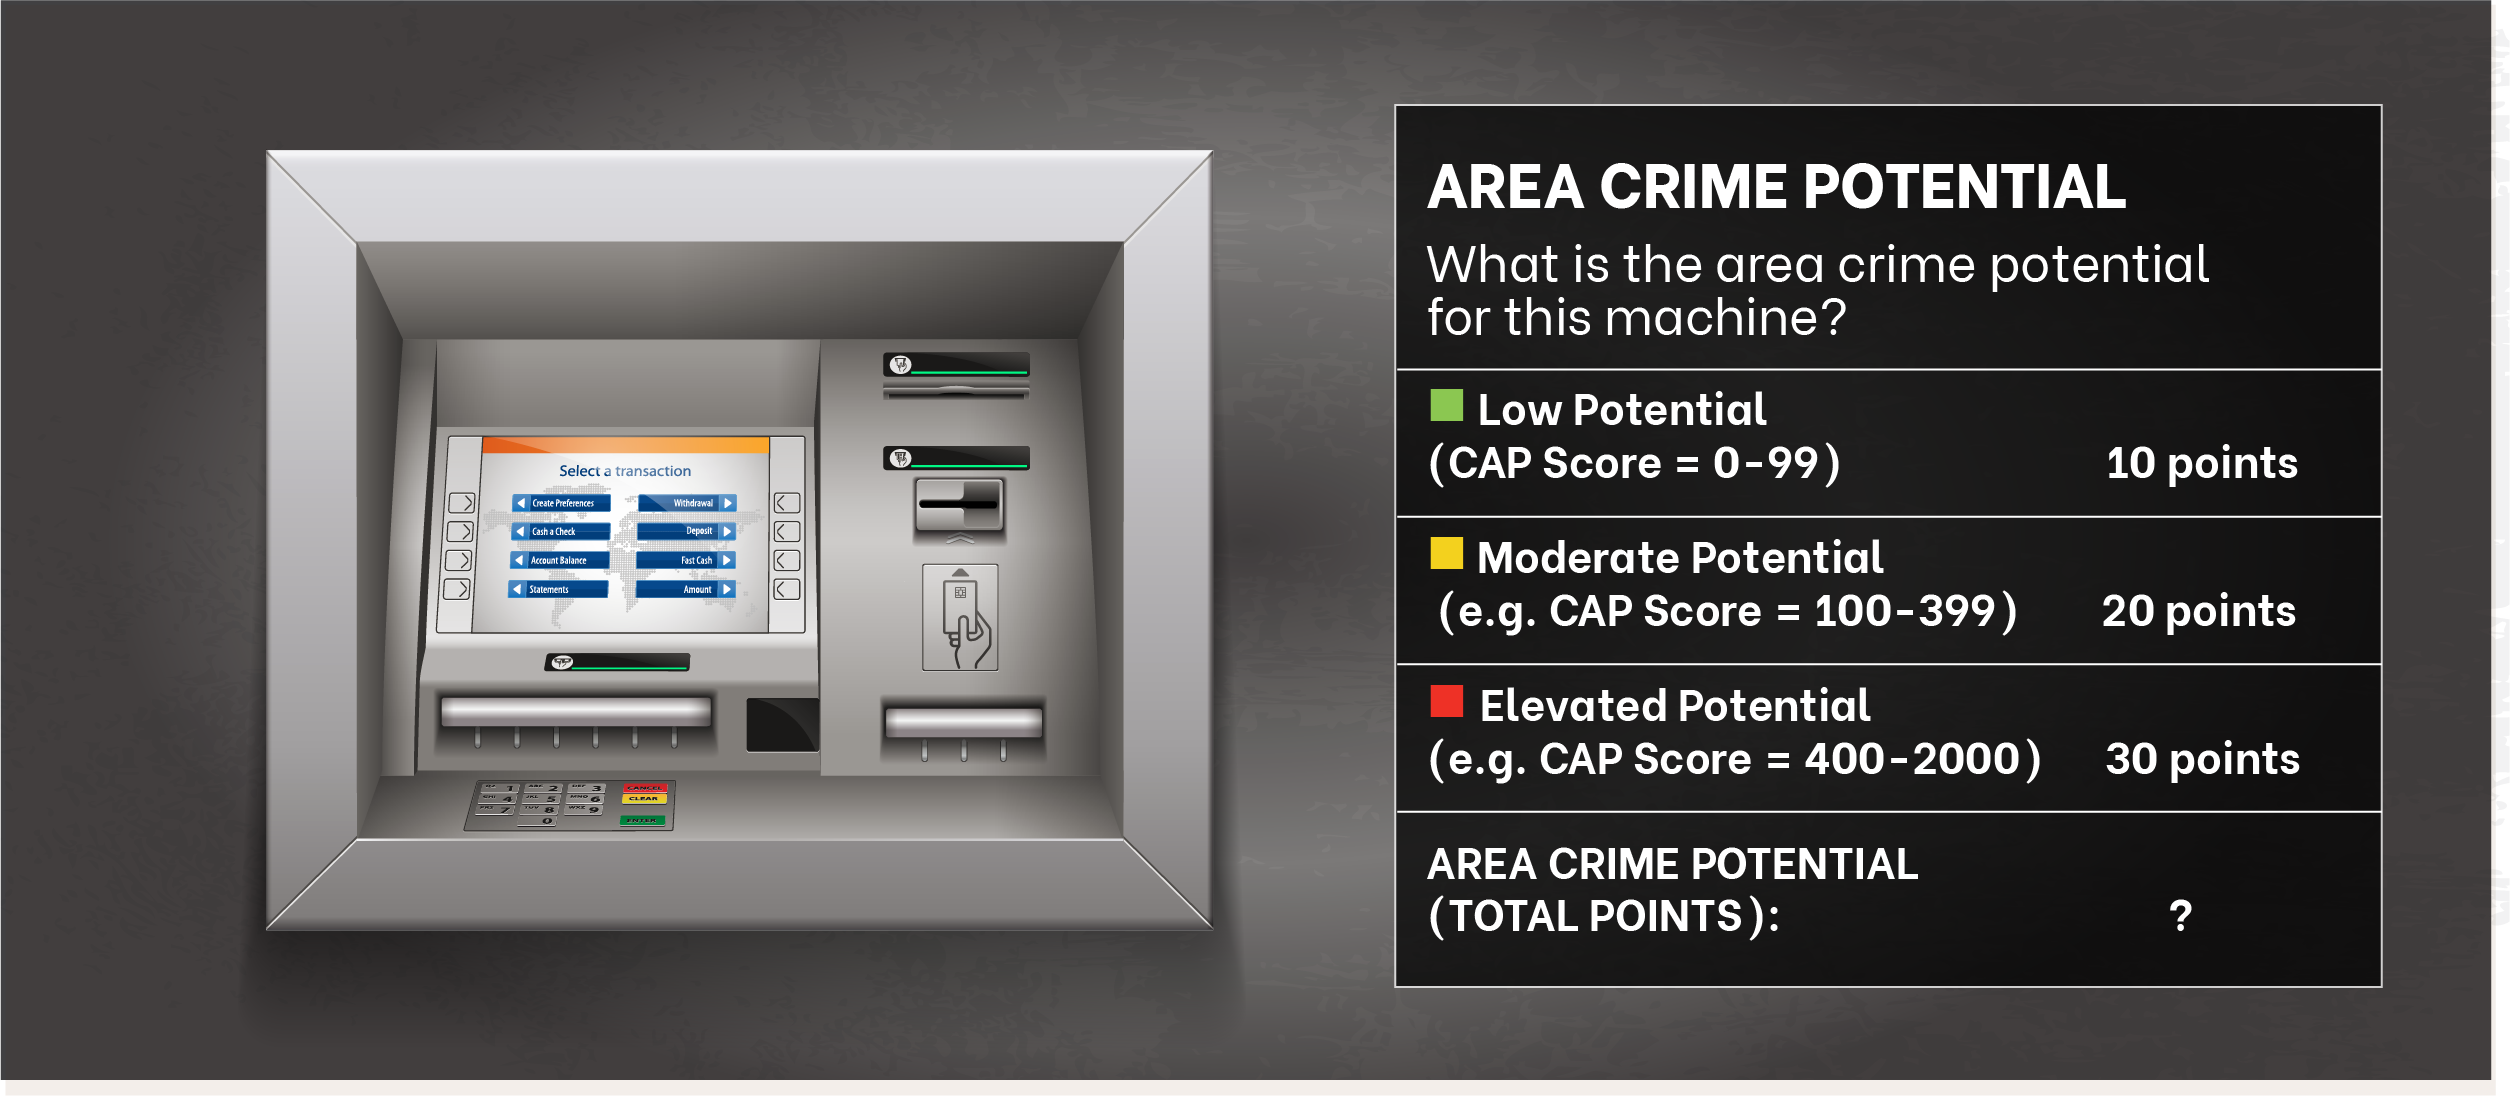 ABA's ATM Security Risk Assessment Guidelines